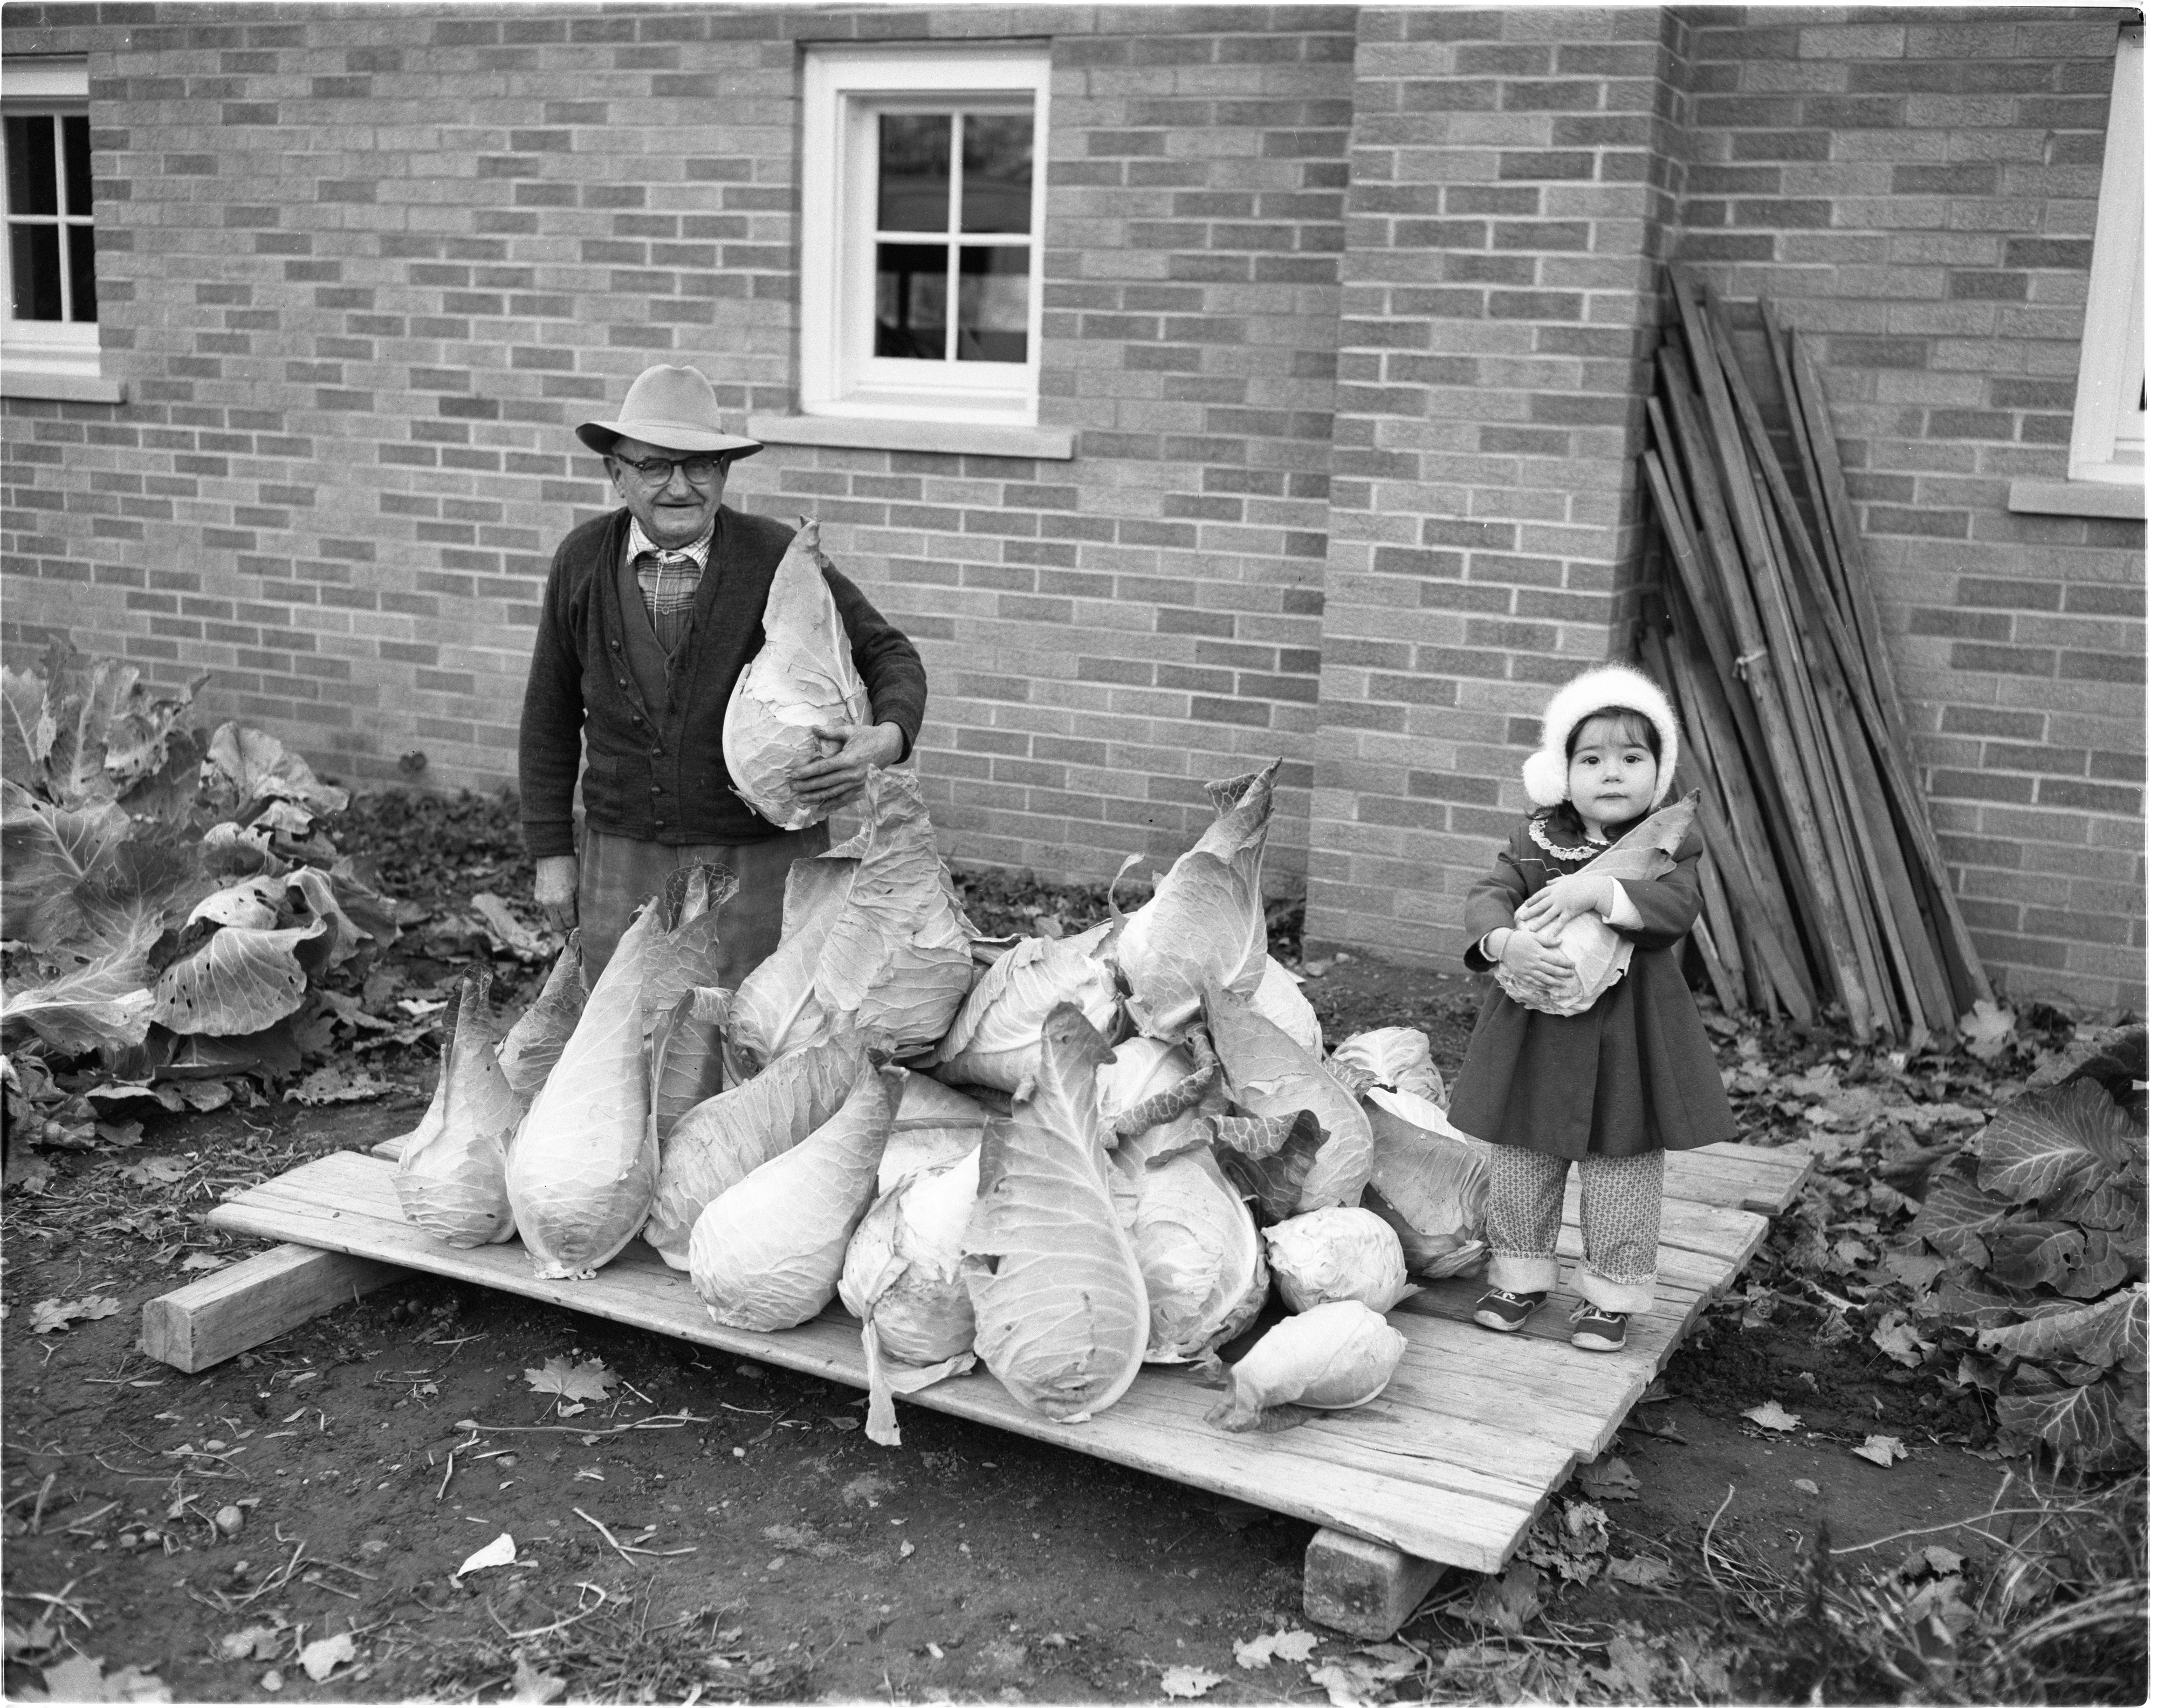 J. H. Seitz Sr. and Granddaughter Susan Reid with Crop of Cabbage, November 1958 image